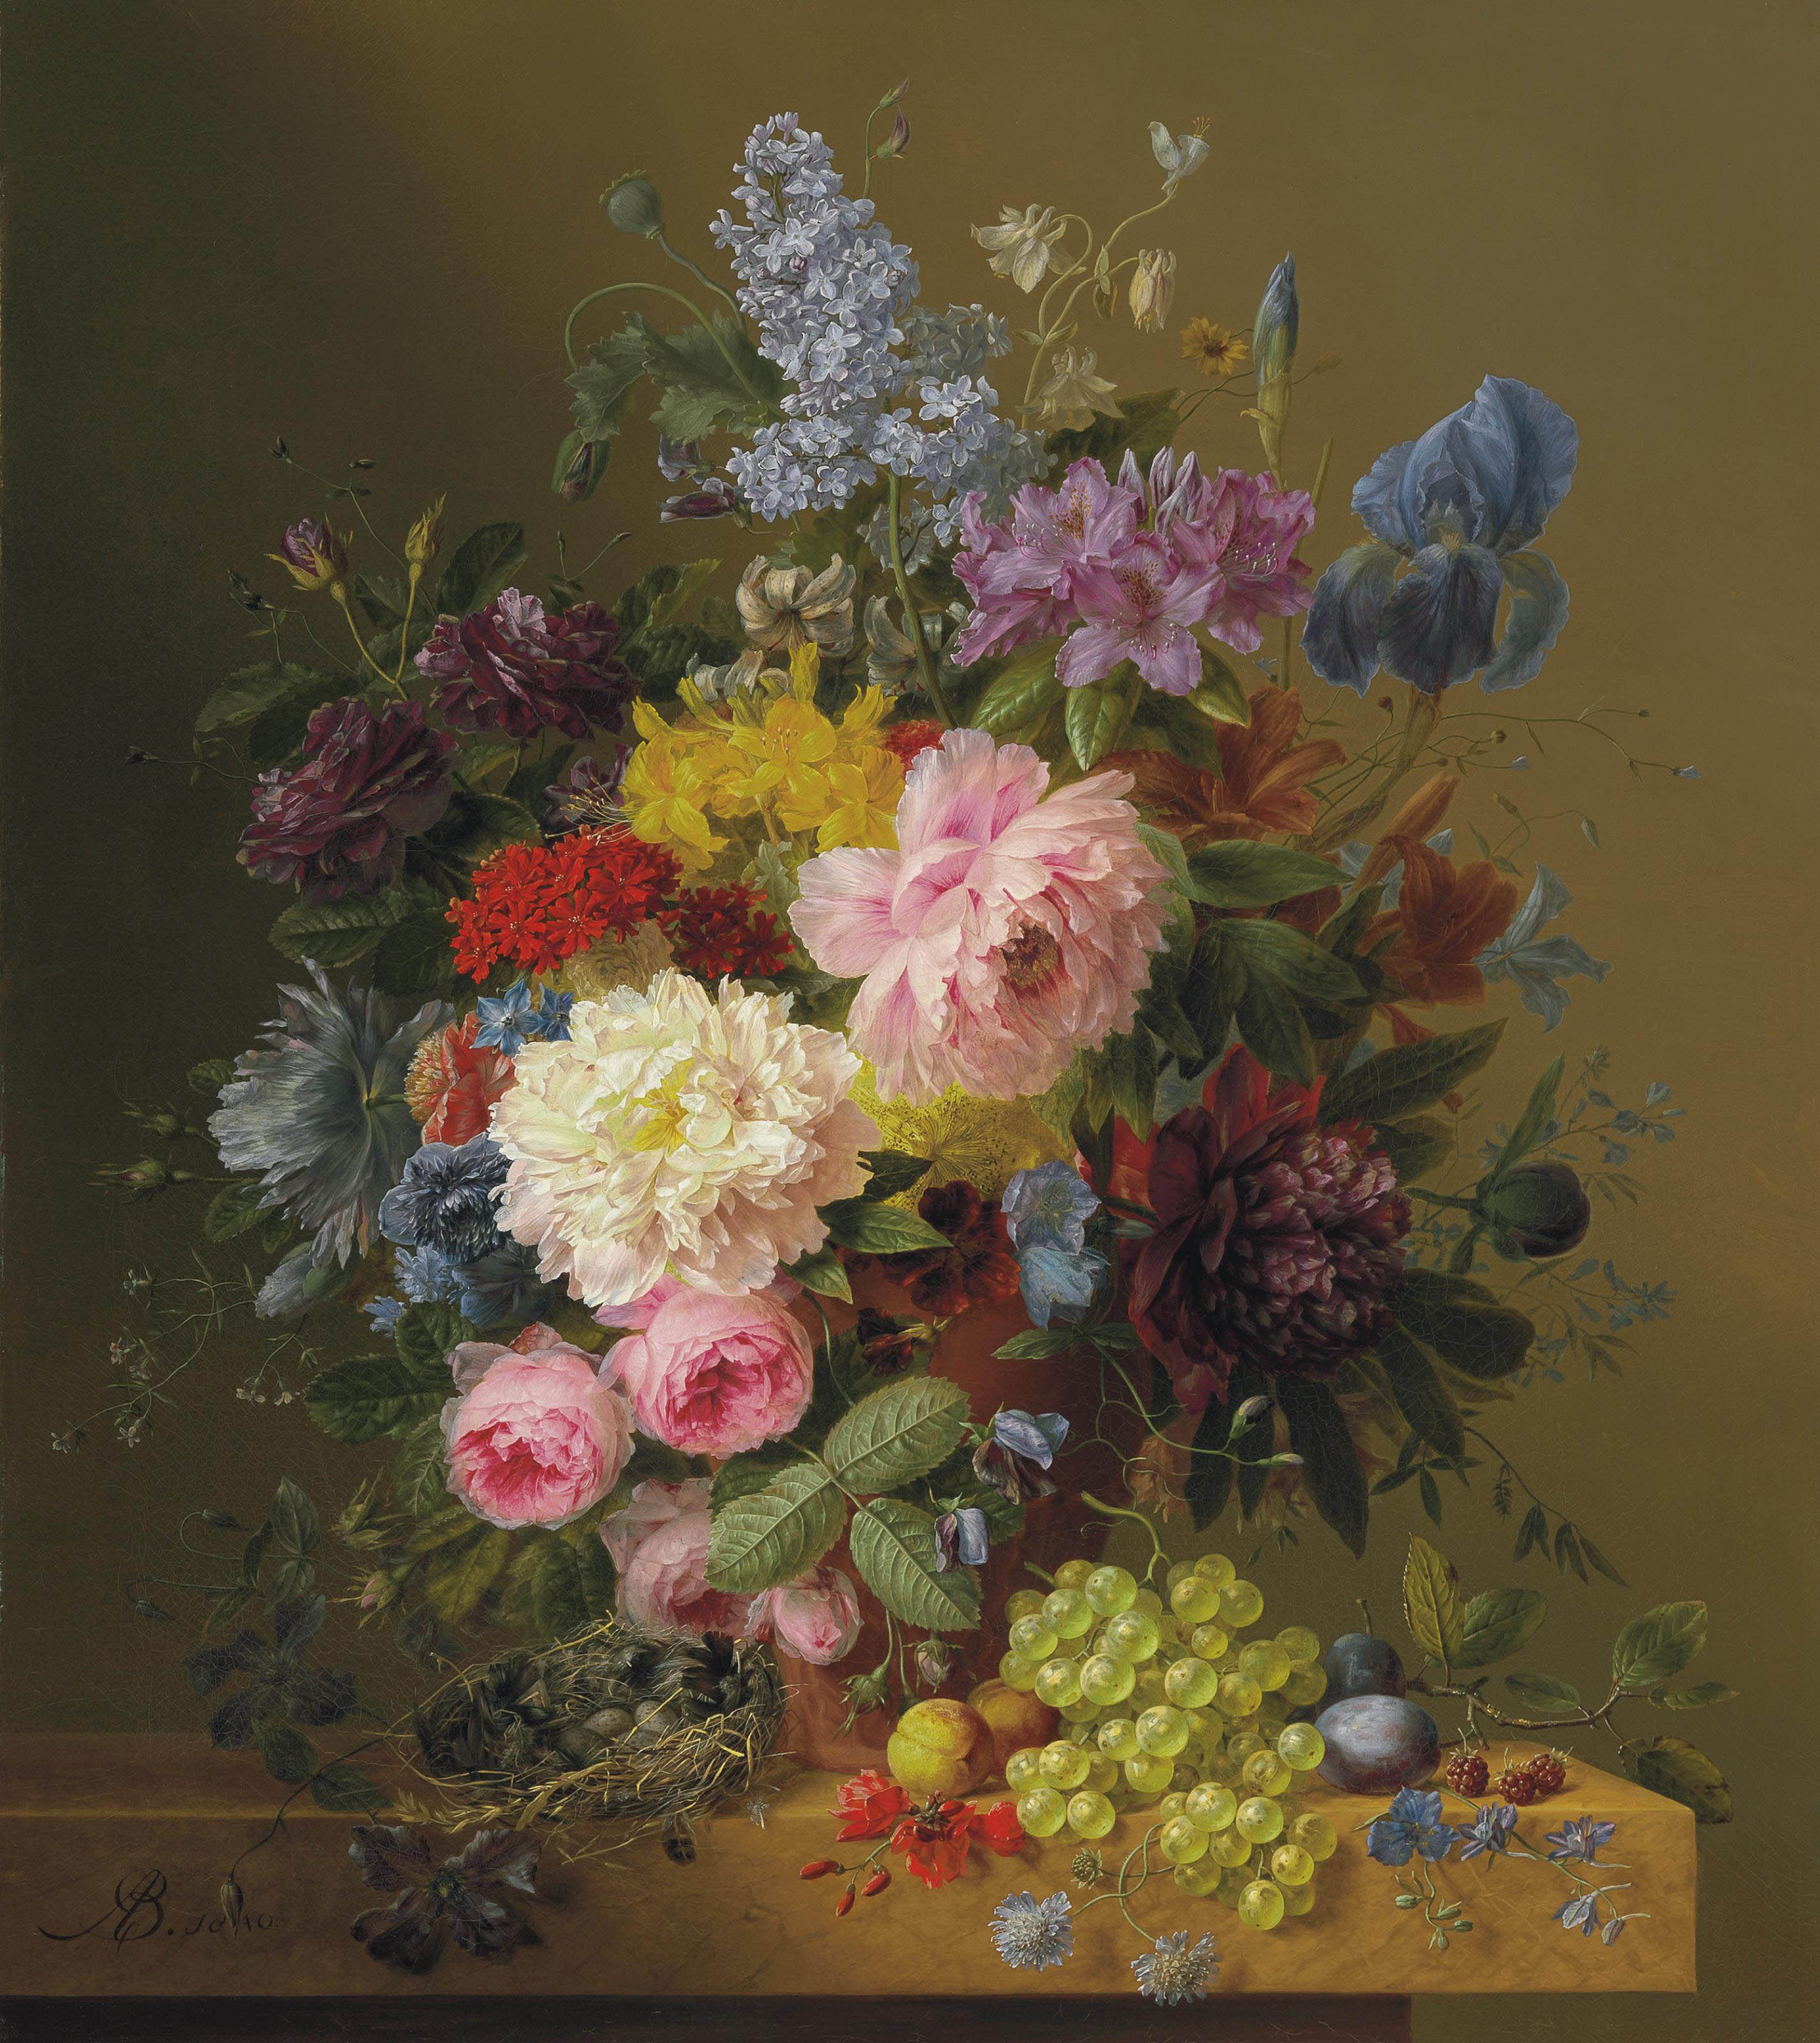 Lilacs, Peonies, Tulips, Roses, Irises and other Flowers with Fruit and a Bird's Nest on a Marble Ledge